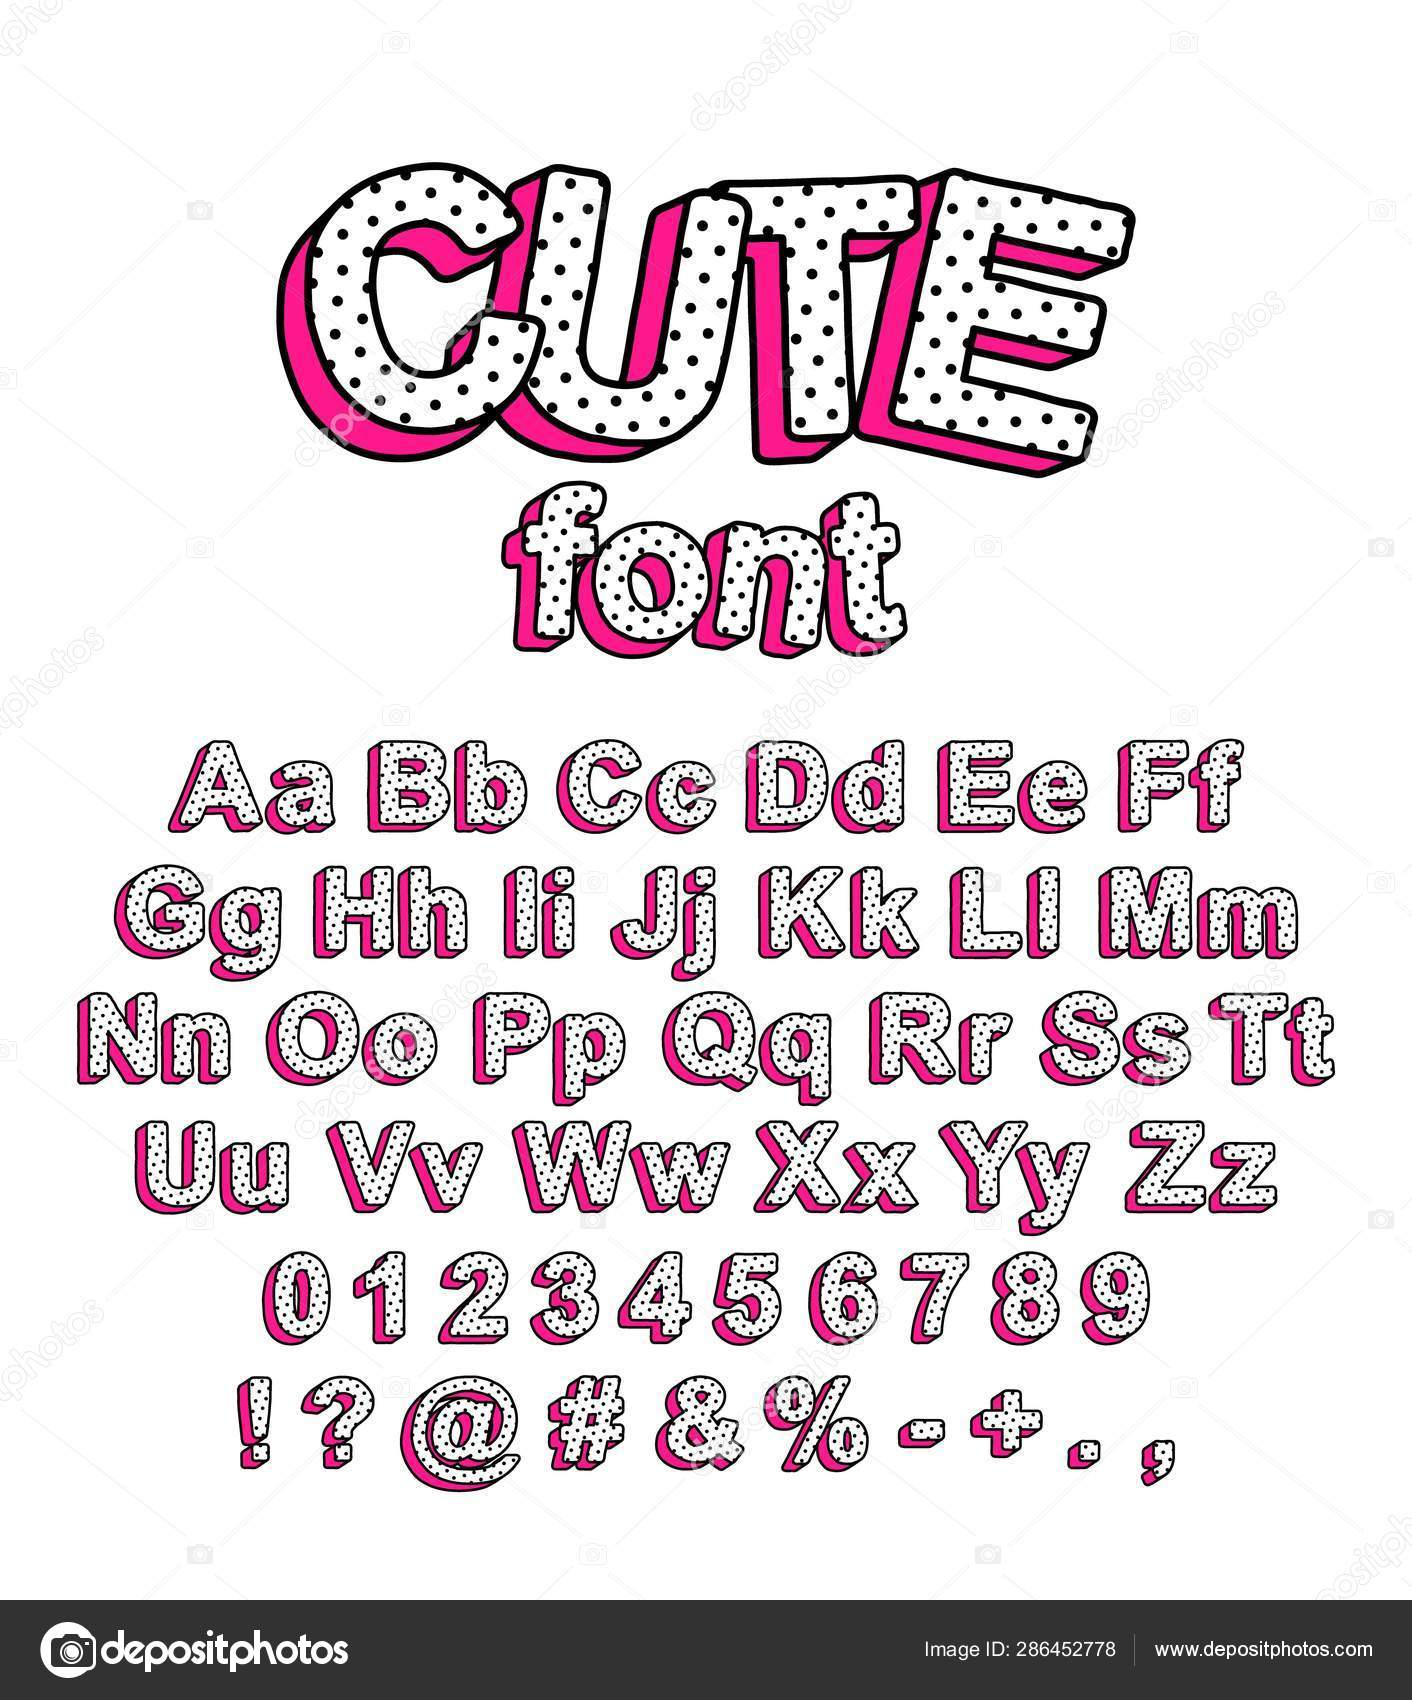 Cute Lol Doll Surprise Style Font Stock Vector C Ovnex